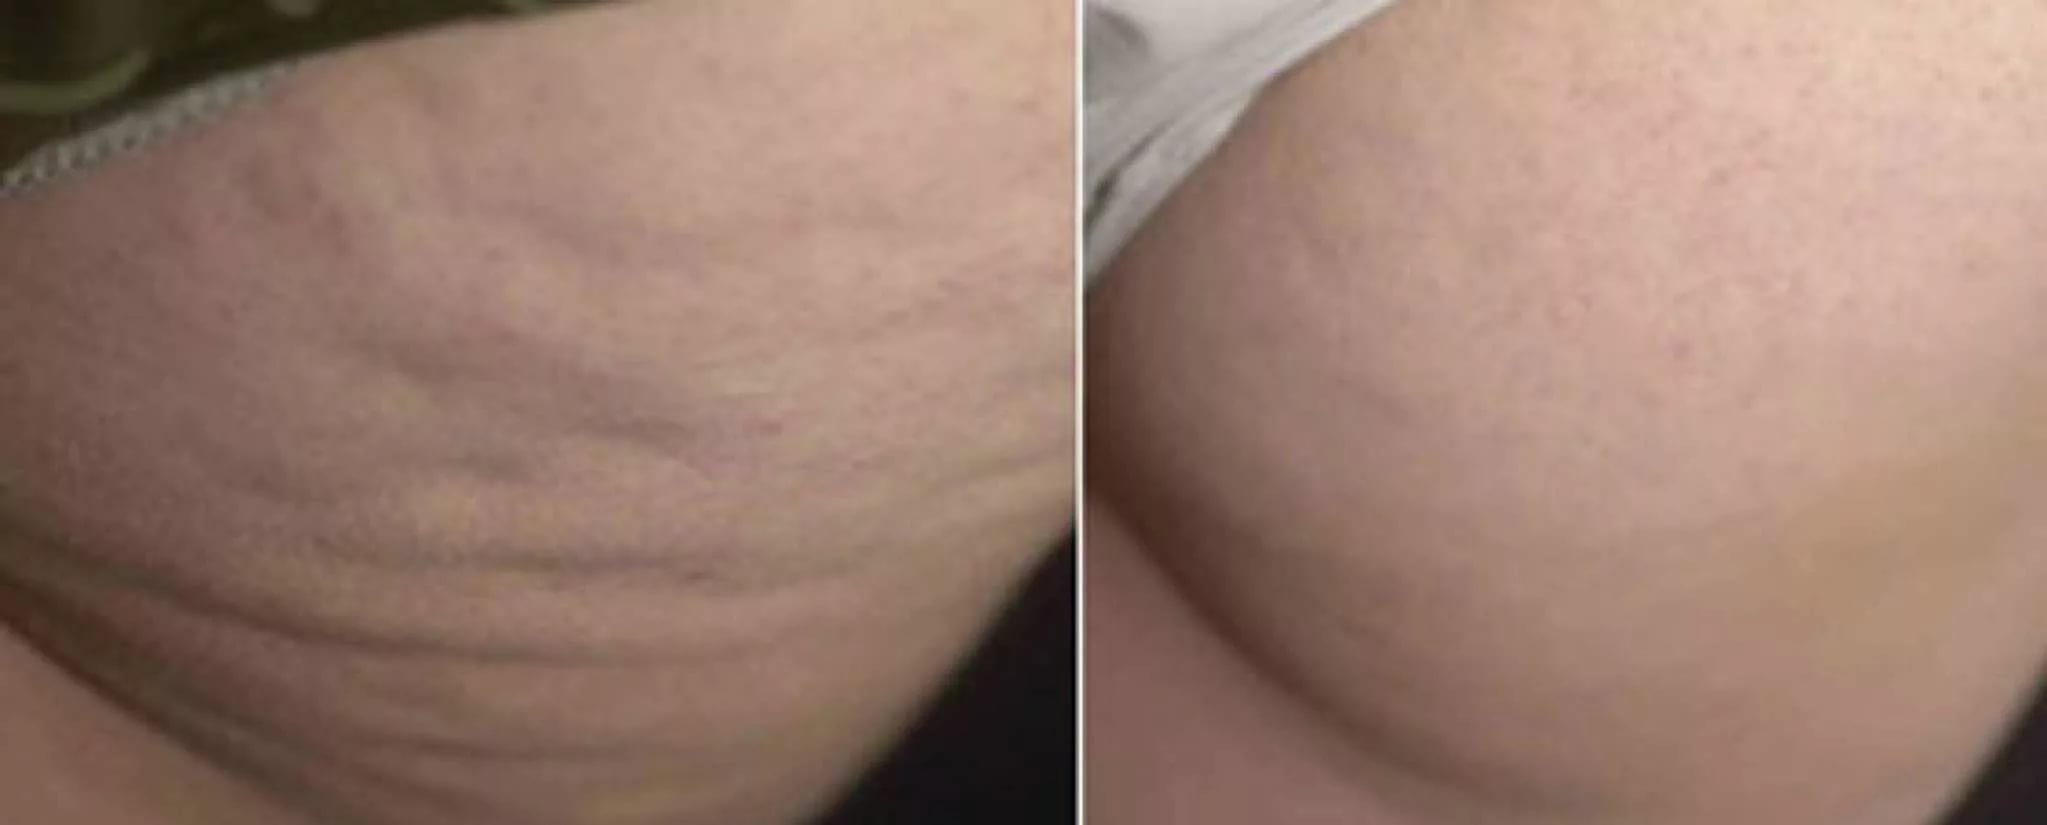 ozonoterapia cellulite